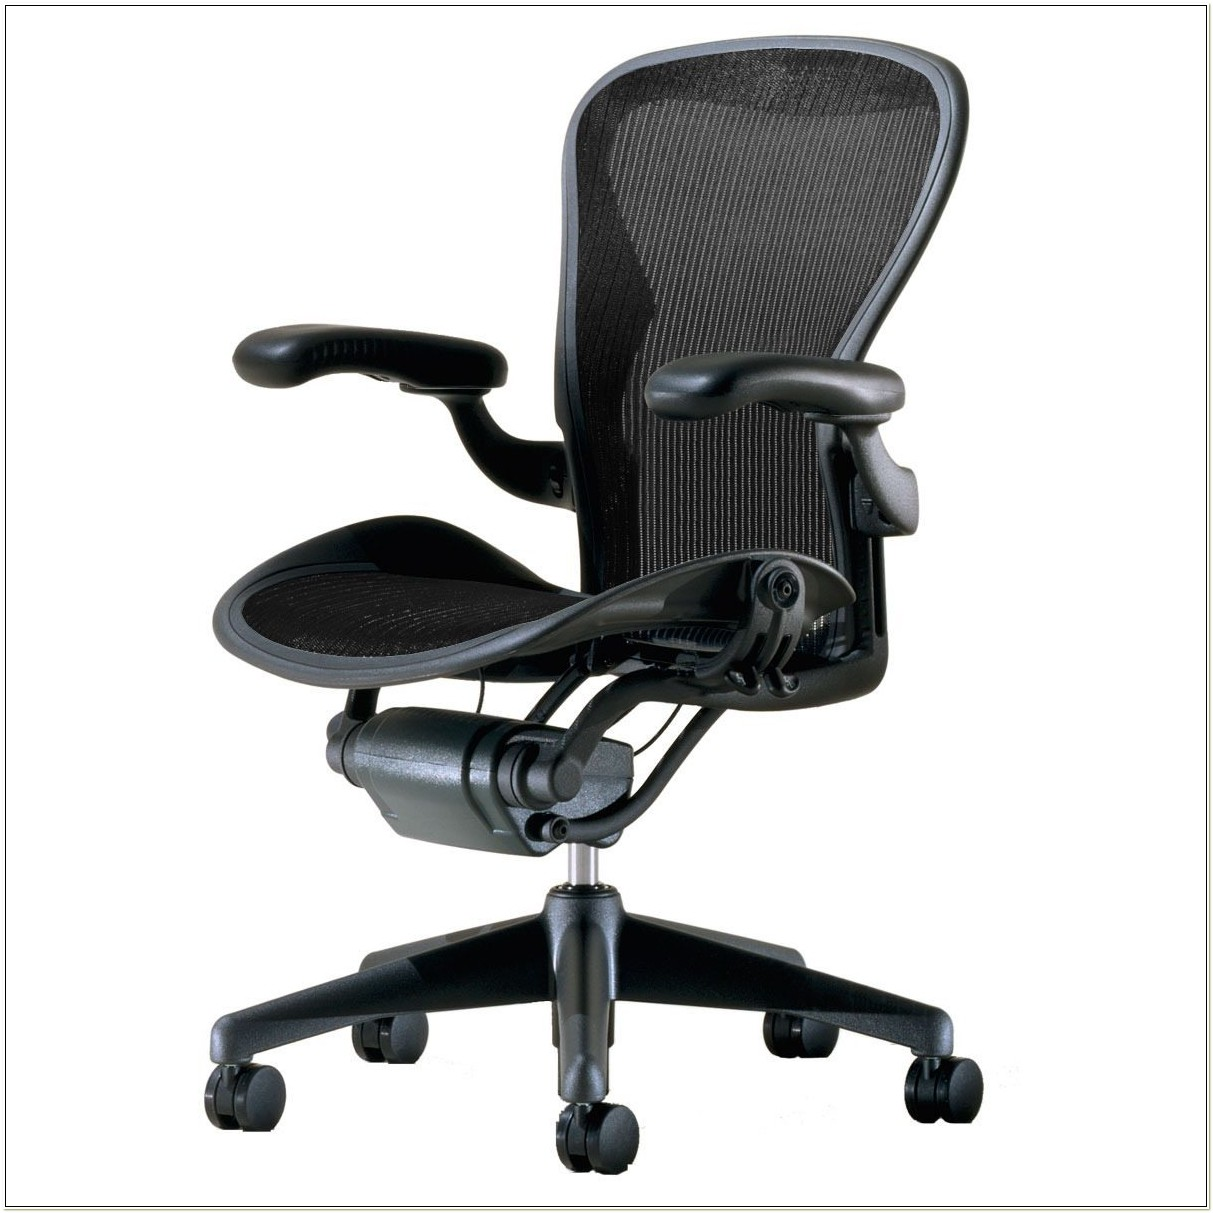 Highest Rated Office Chairs